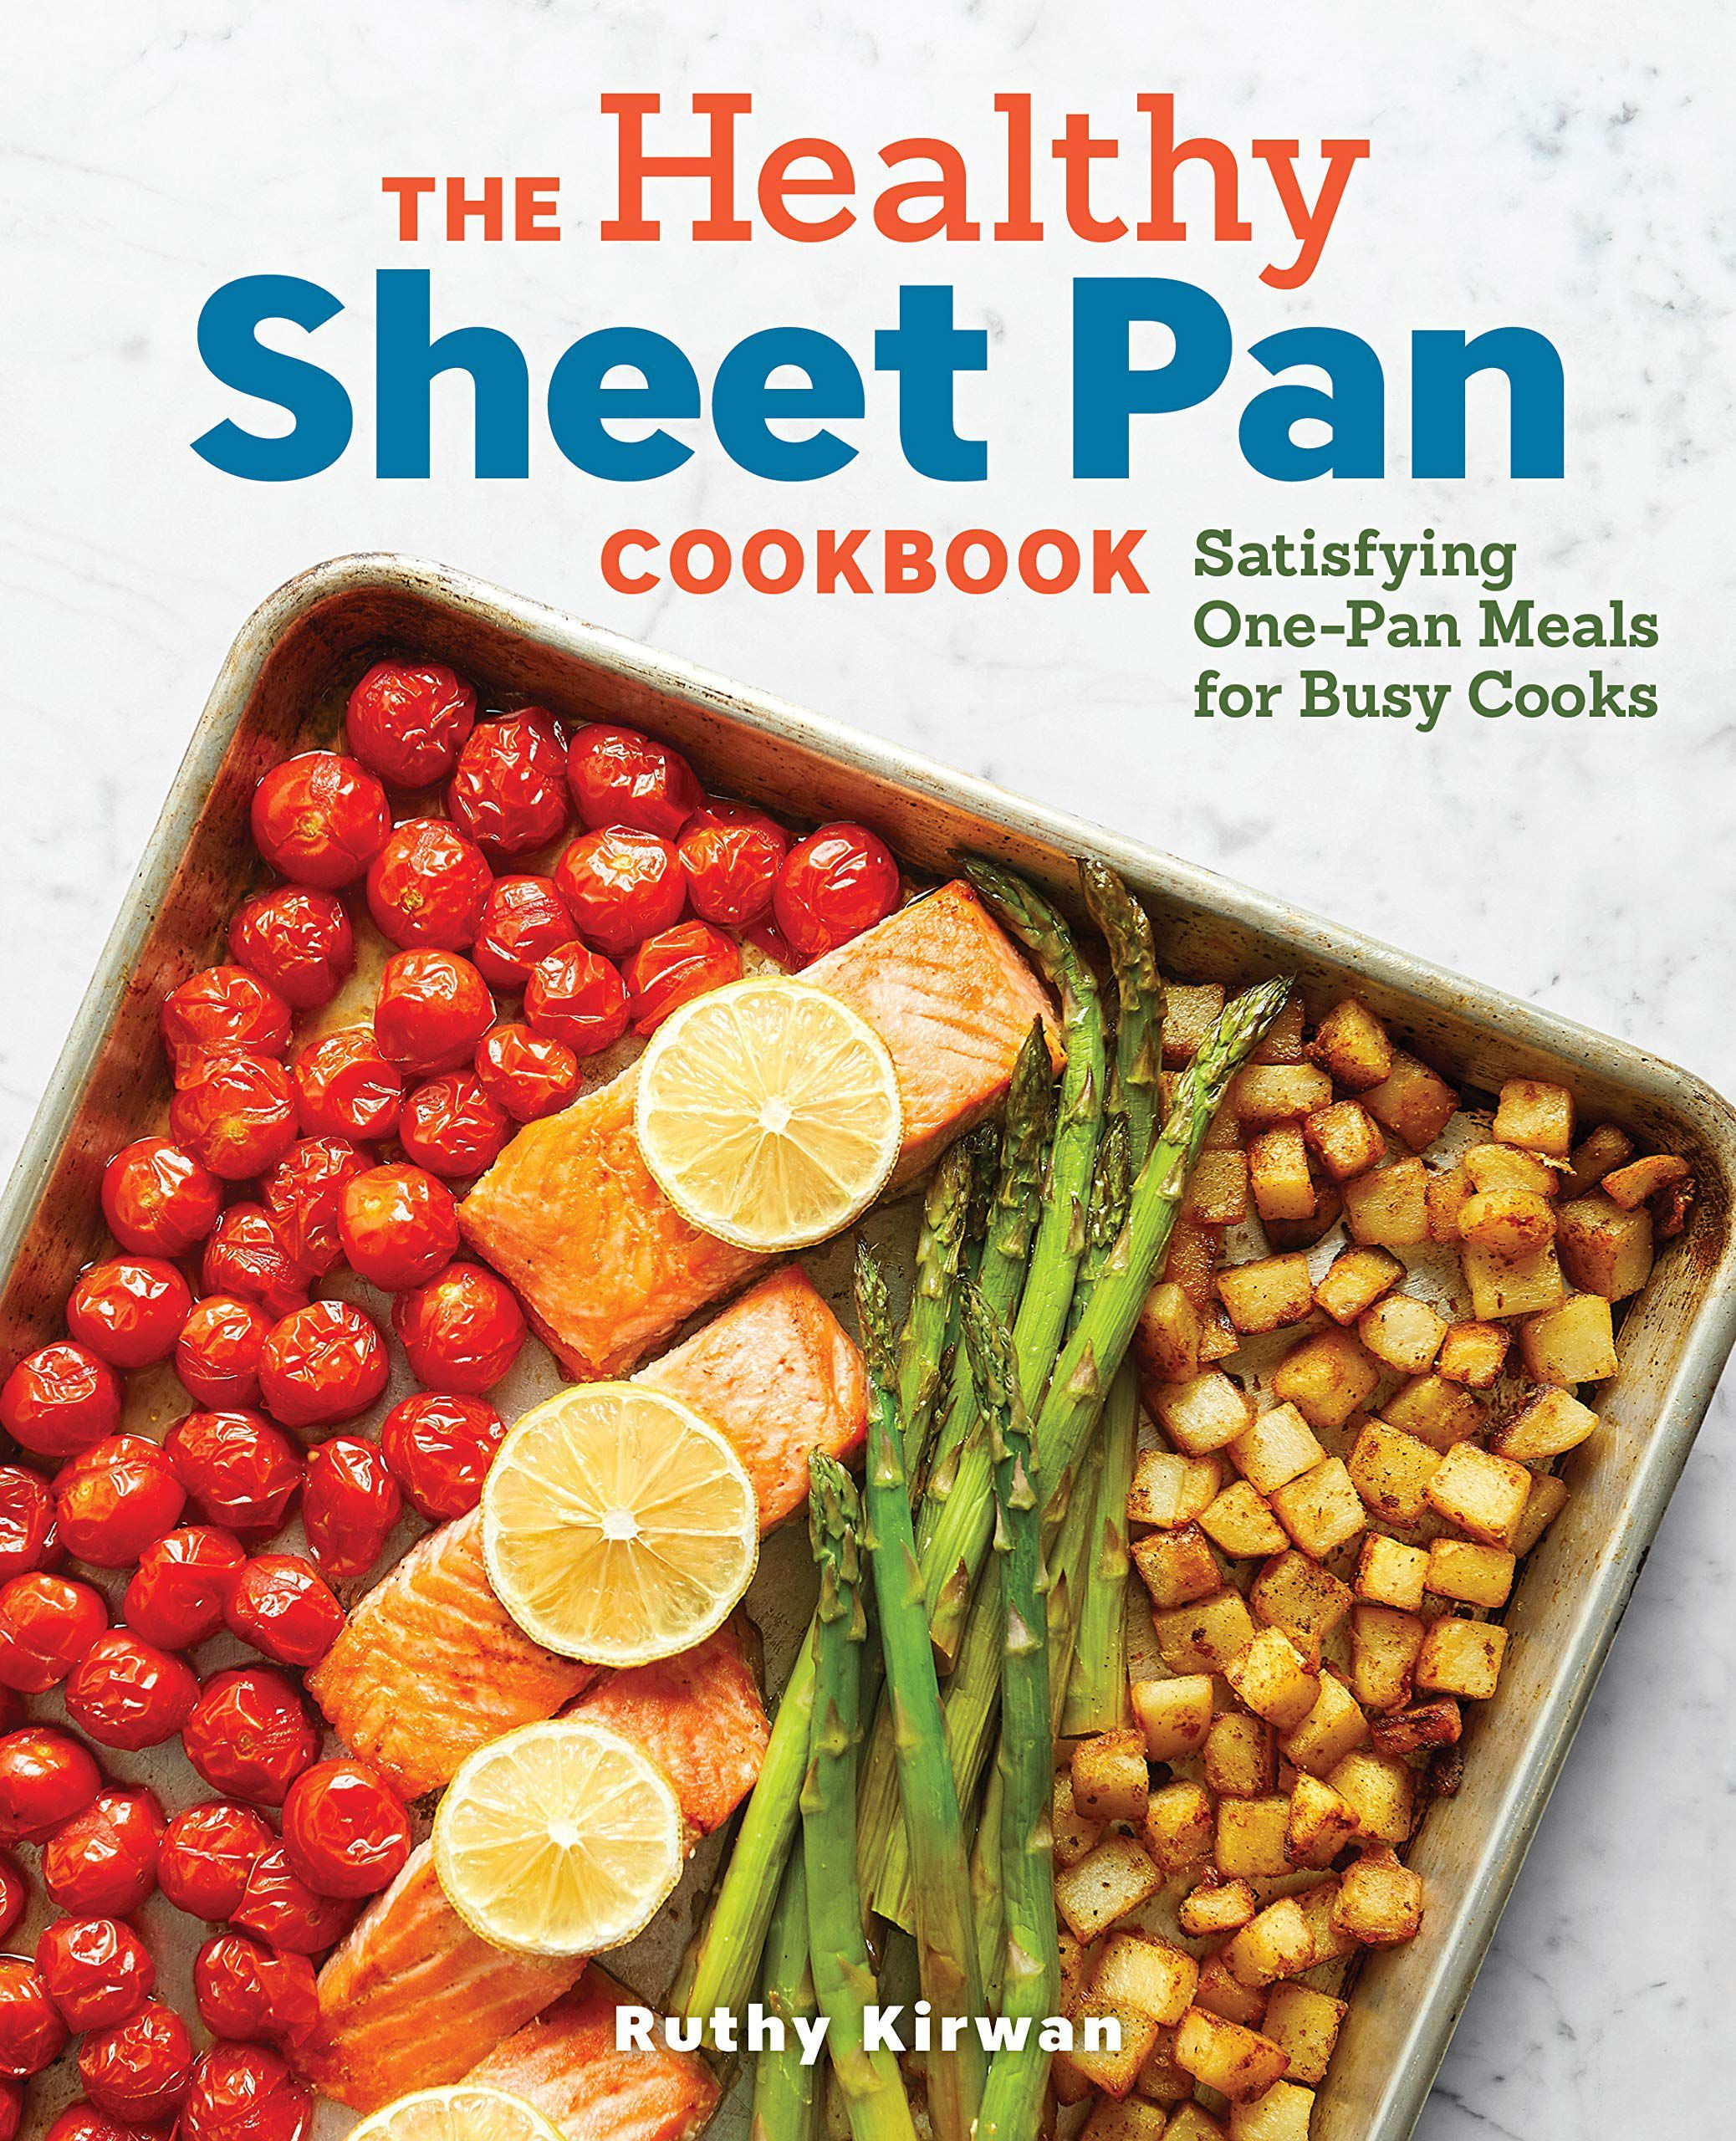 Best Cookbook 2019 15 Best Cookbooks 2019   New Cookbooks Coming Out in 2019